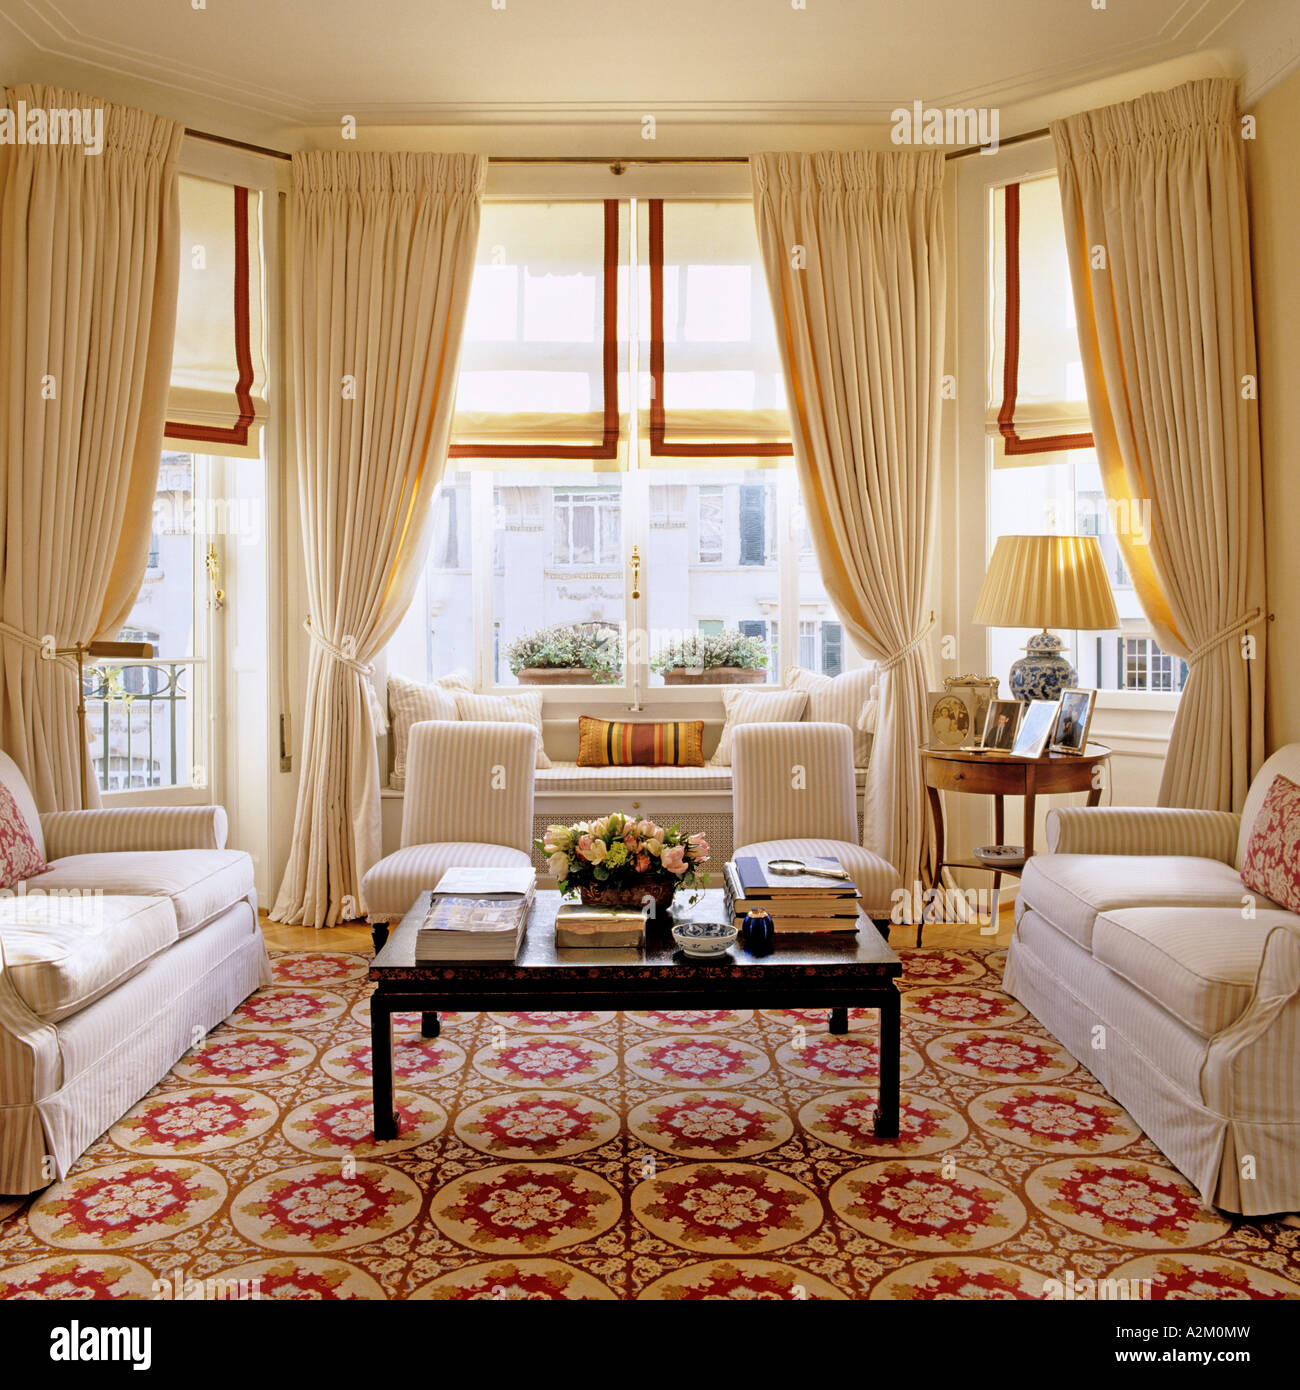 Large Living Room With Three Sofas, Patterned Carpet And Bay Windows Part 93